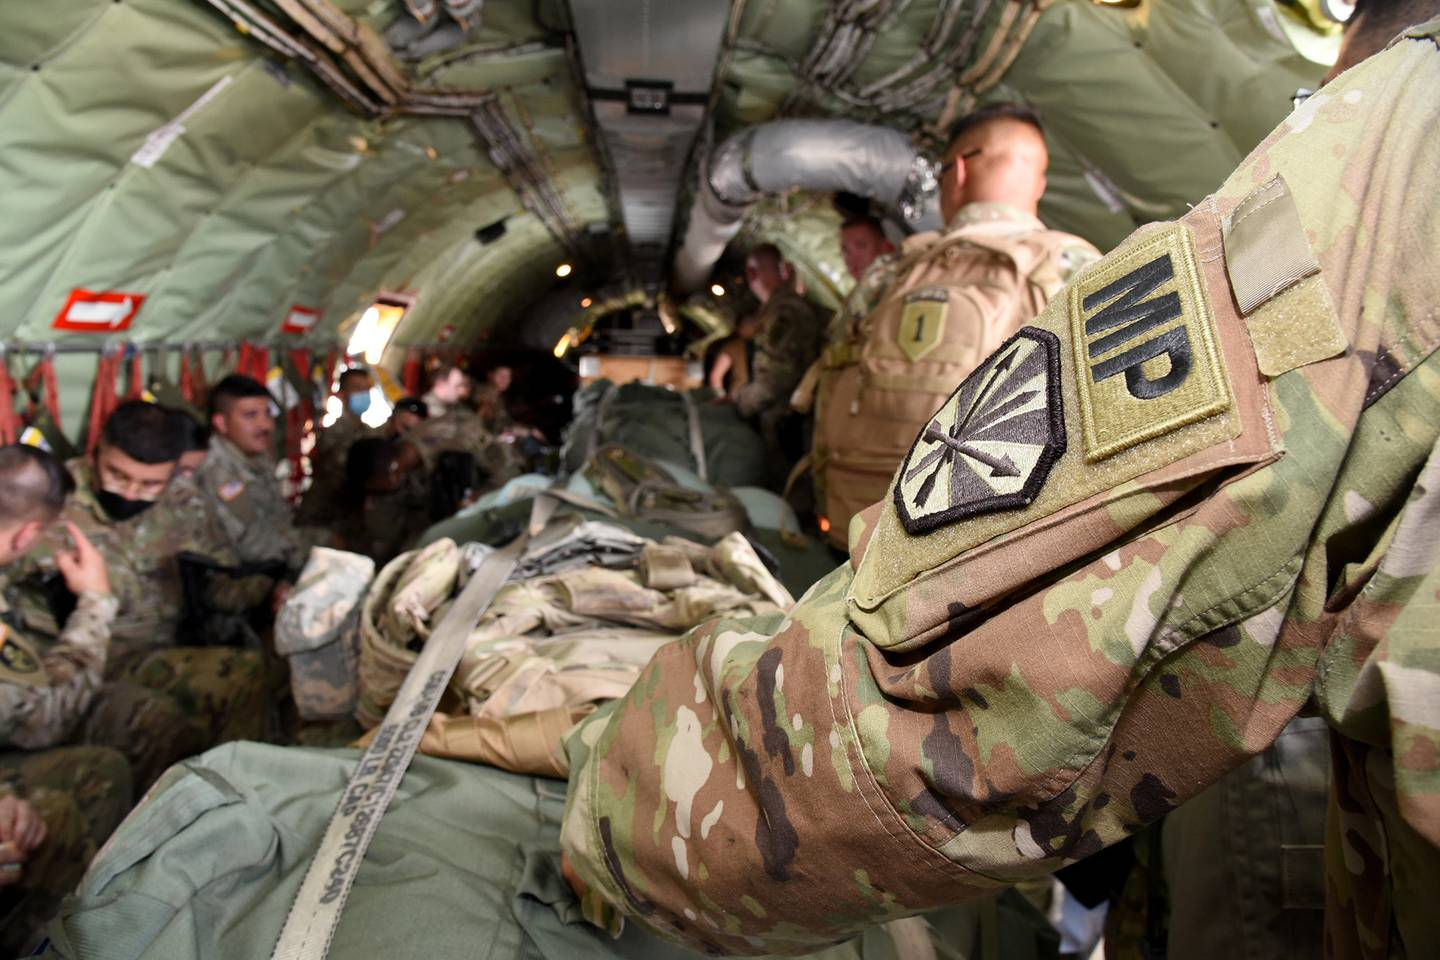 Approximately 150 Arizona National Guard soldiers from the 850th Military Police Battalion mobilized to Wisconsin in response to an Emergency Management Assistance Compact request Aug. 28, 2020.